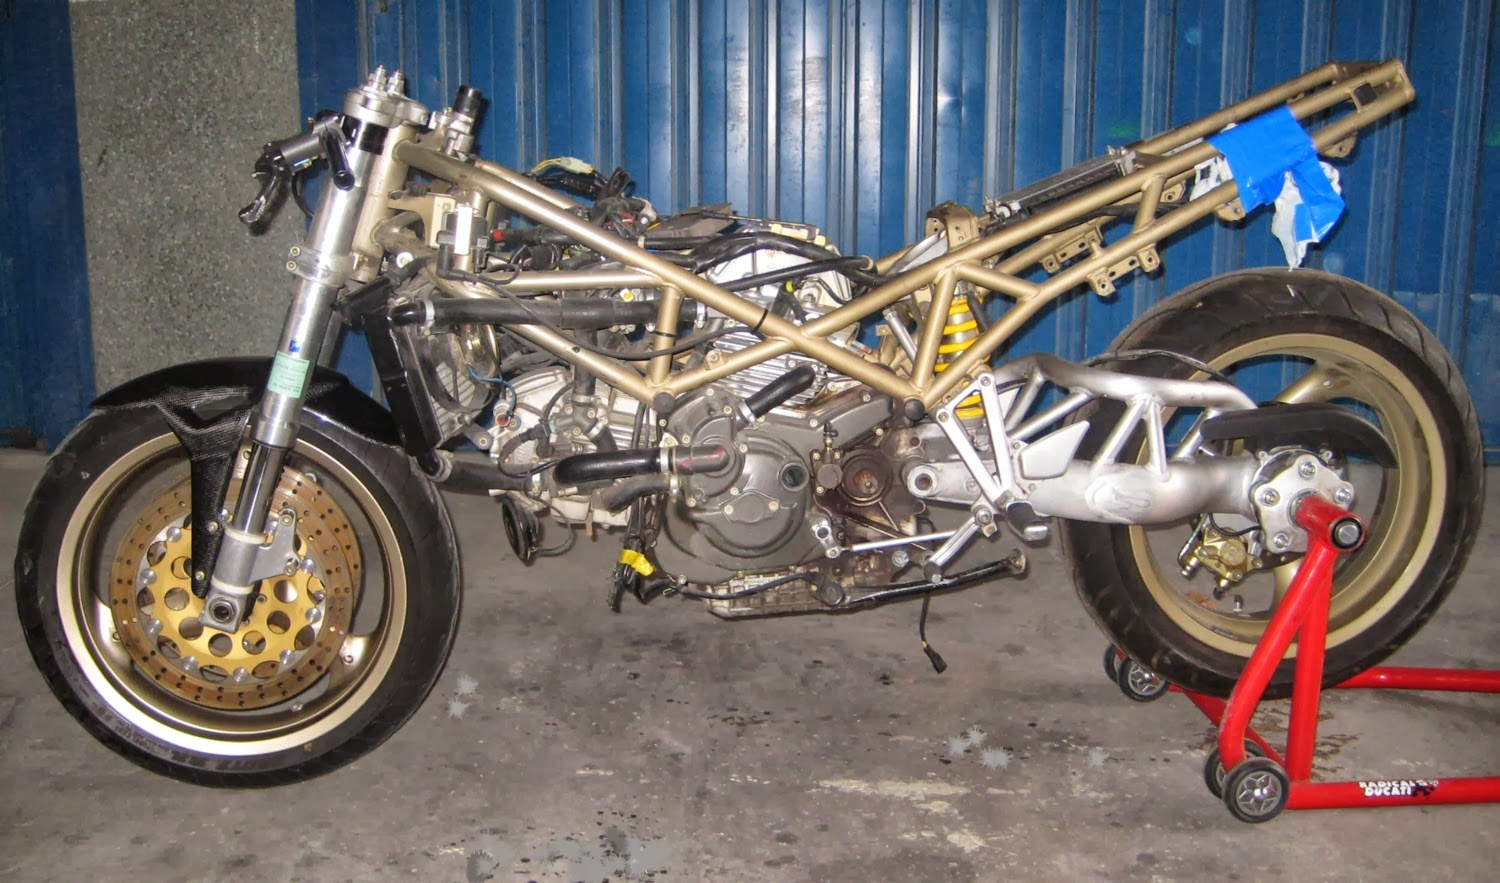 small resolution of  first steep dismount the bike and fit the s2r single side swingarm and wheel mounting the clip ons and began the reposition of the electrical wiring and